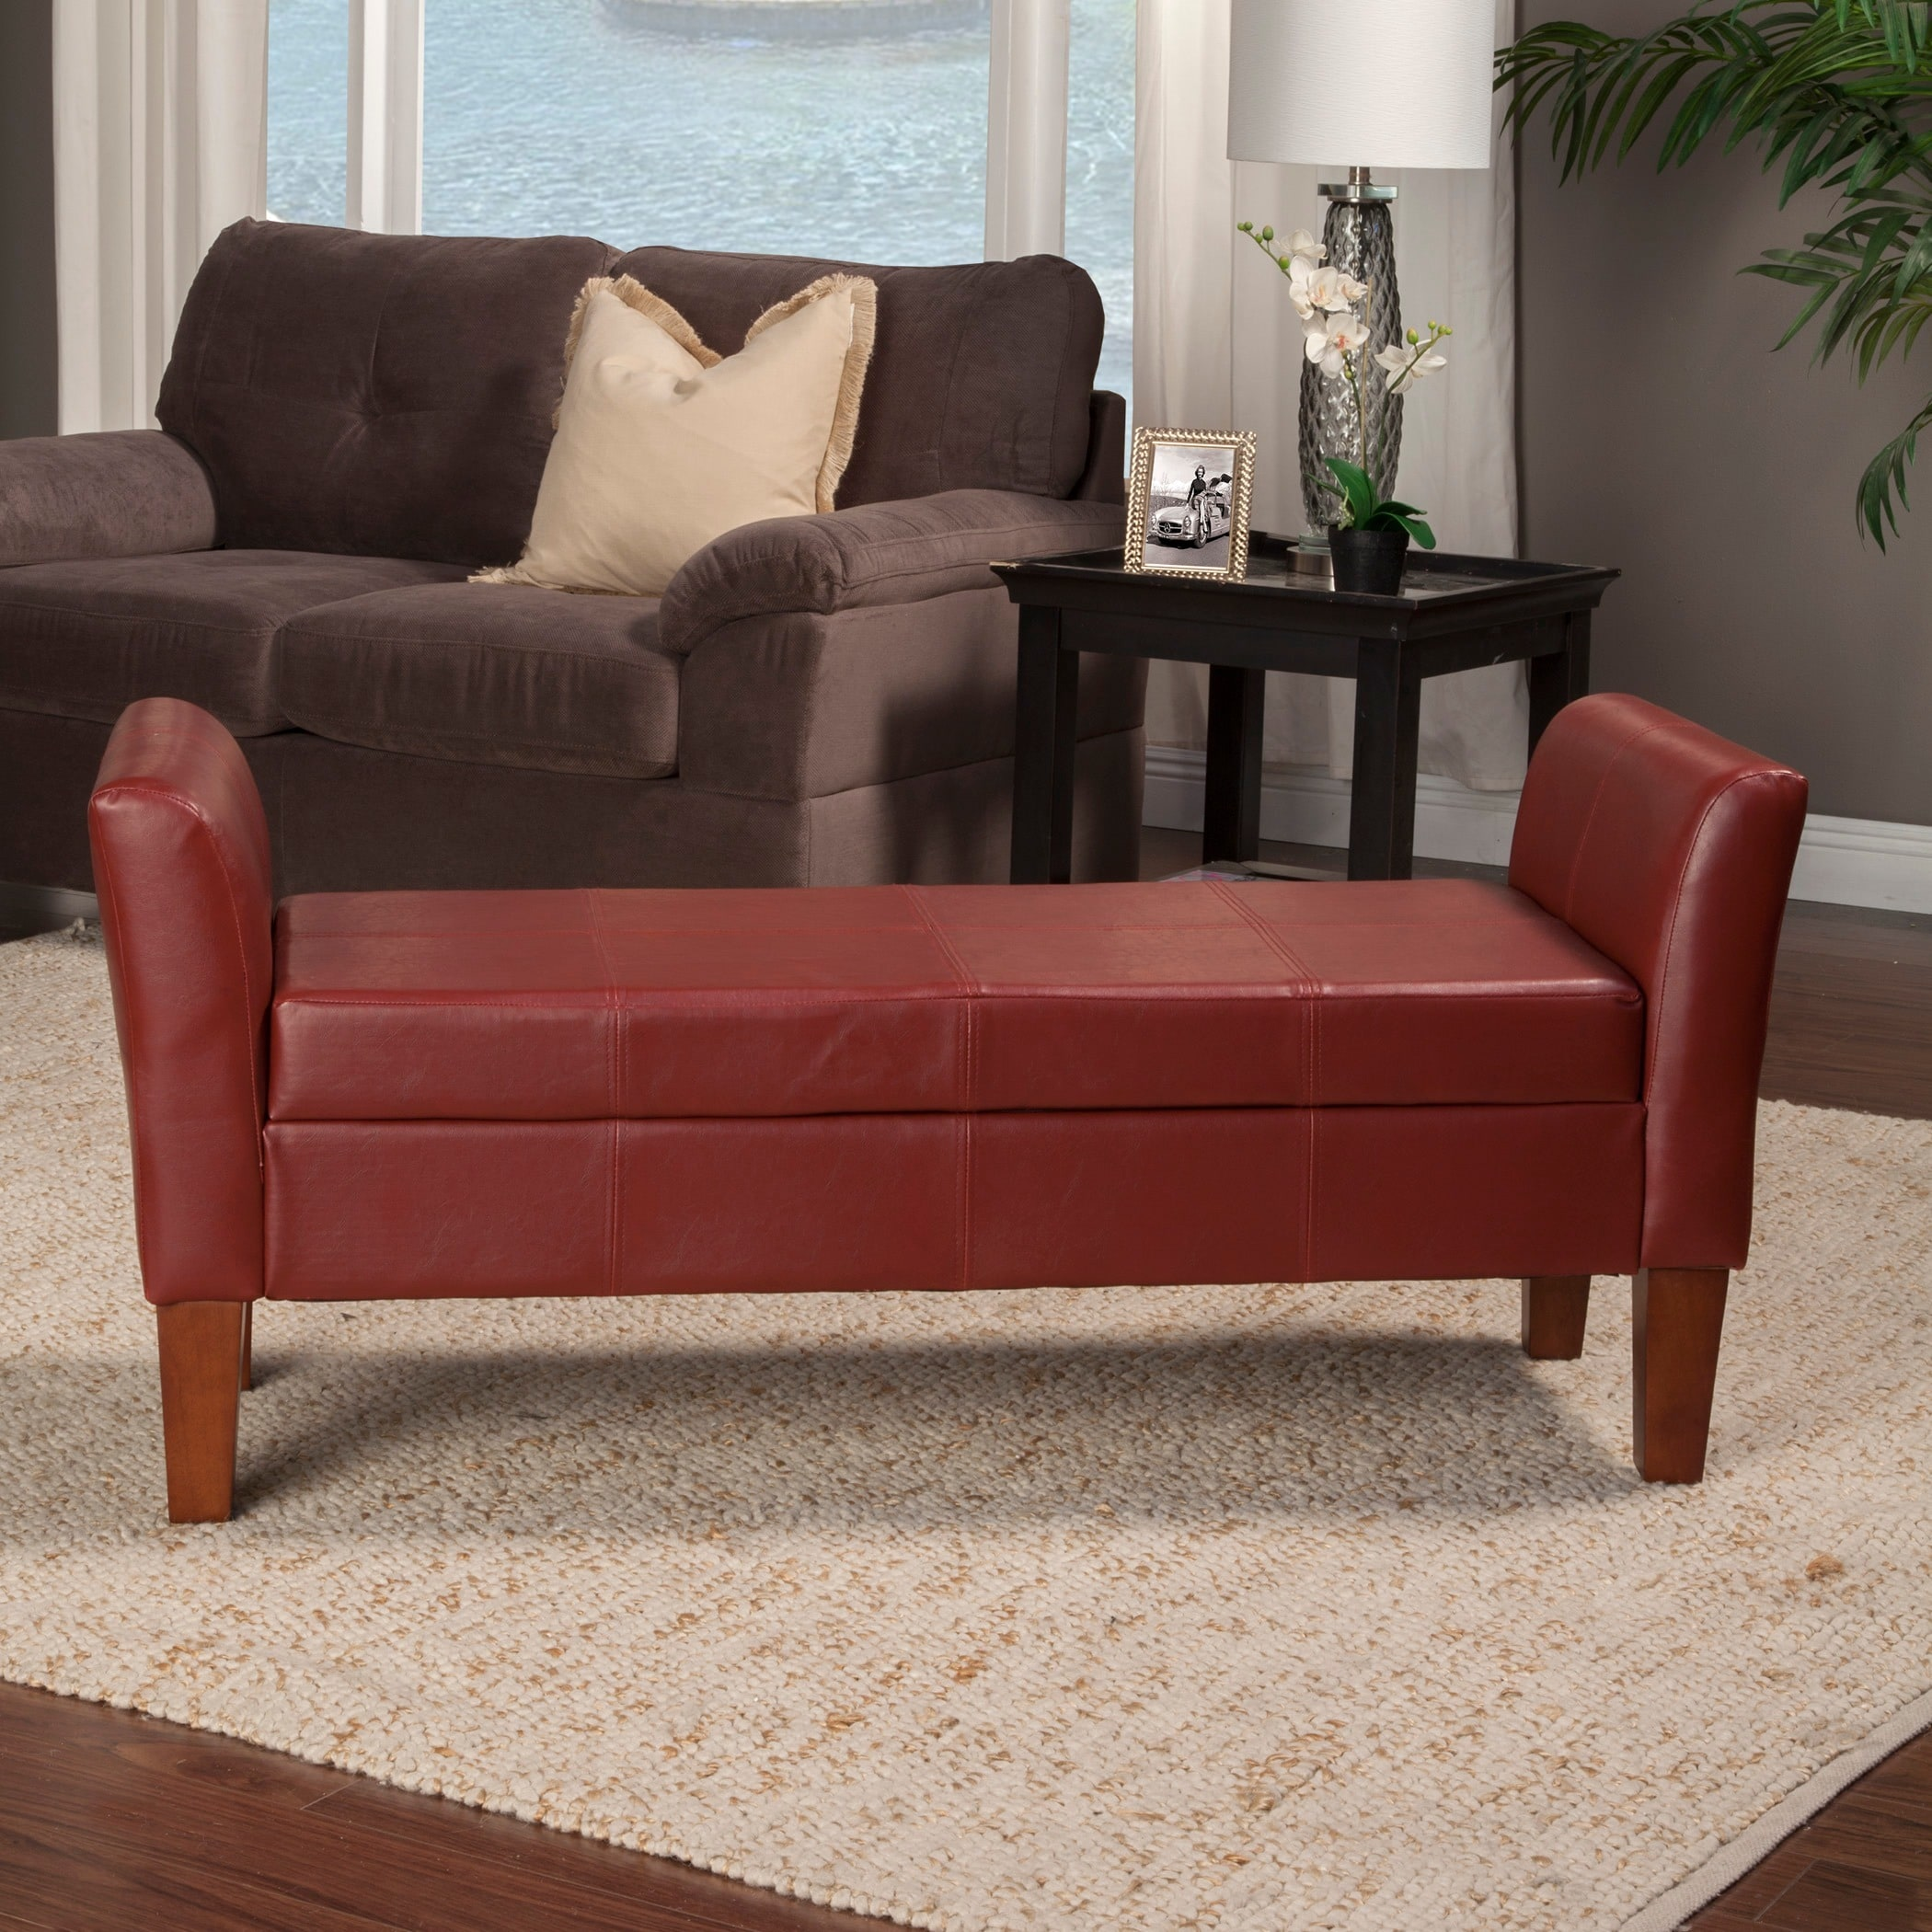 HomePop Storage Bench with Curved Arms